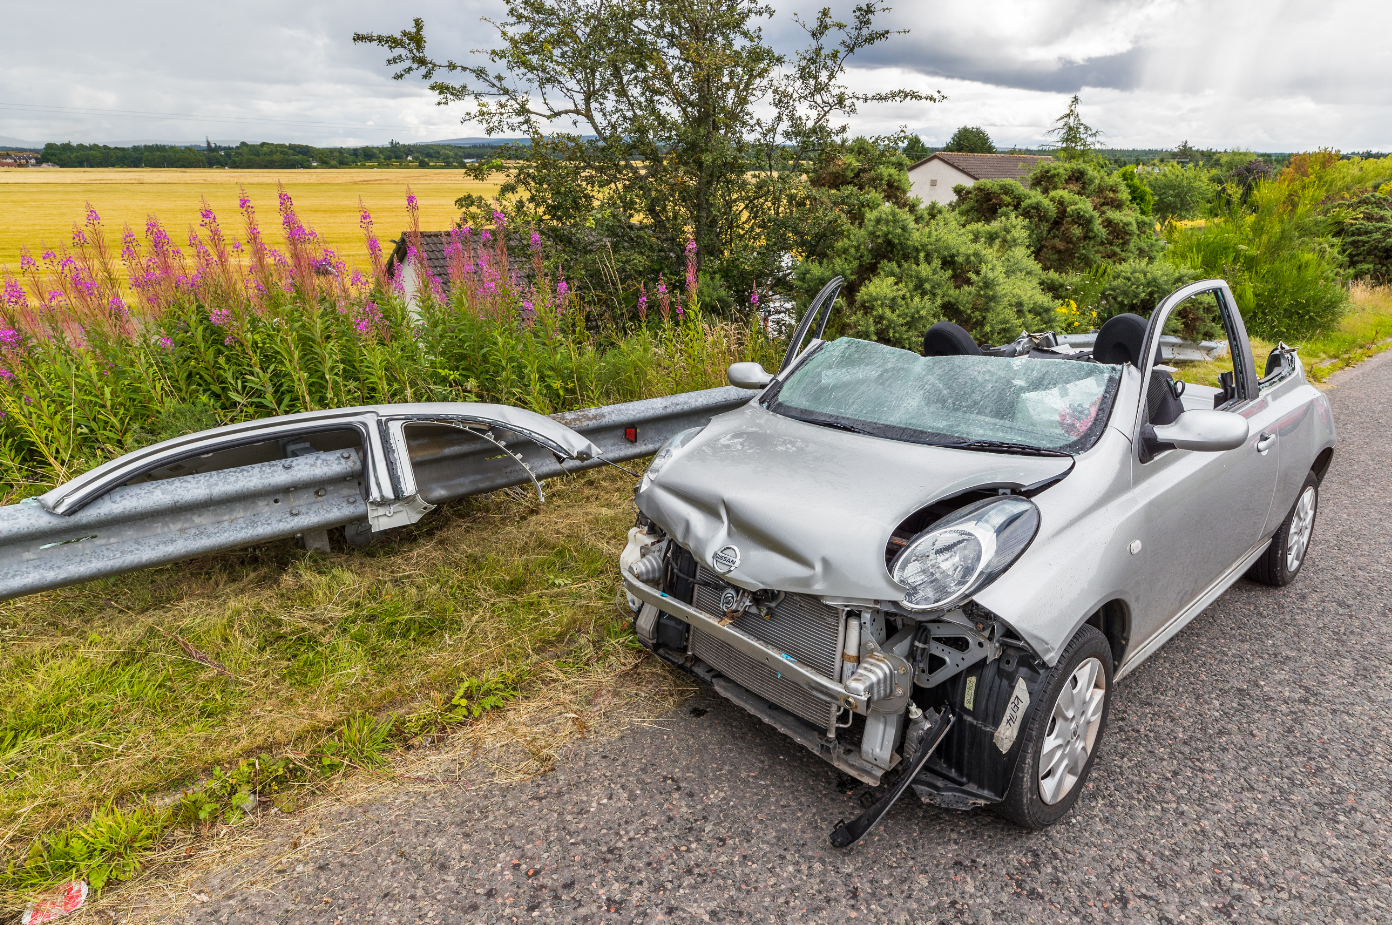 The silver Micra's roof was cut off to free the driver